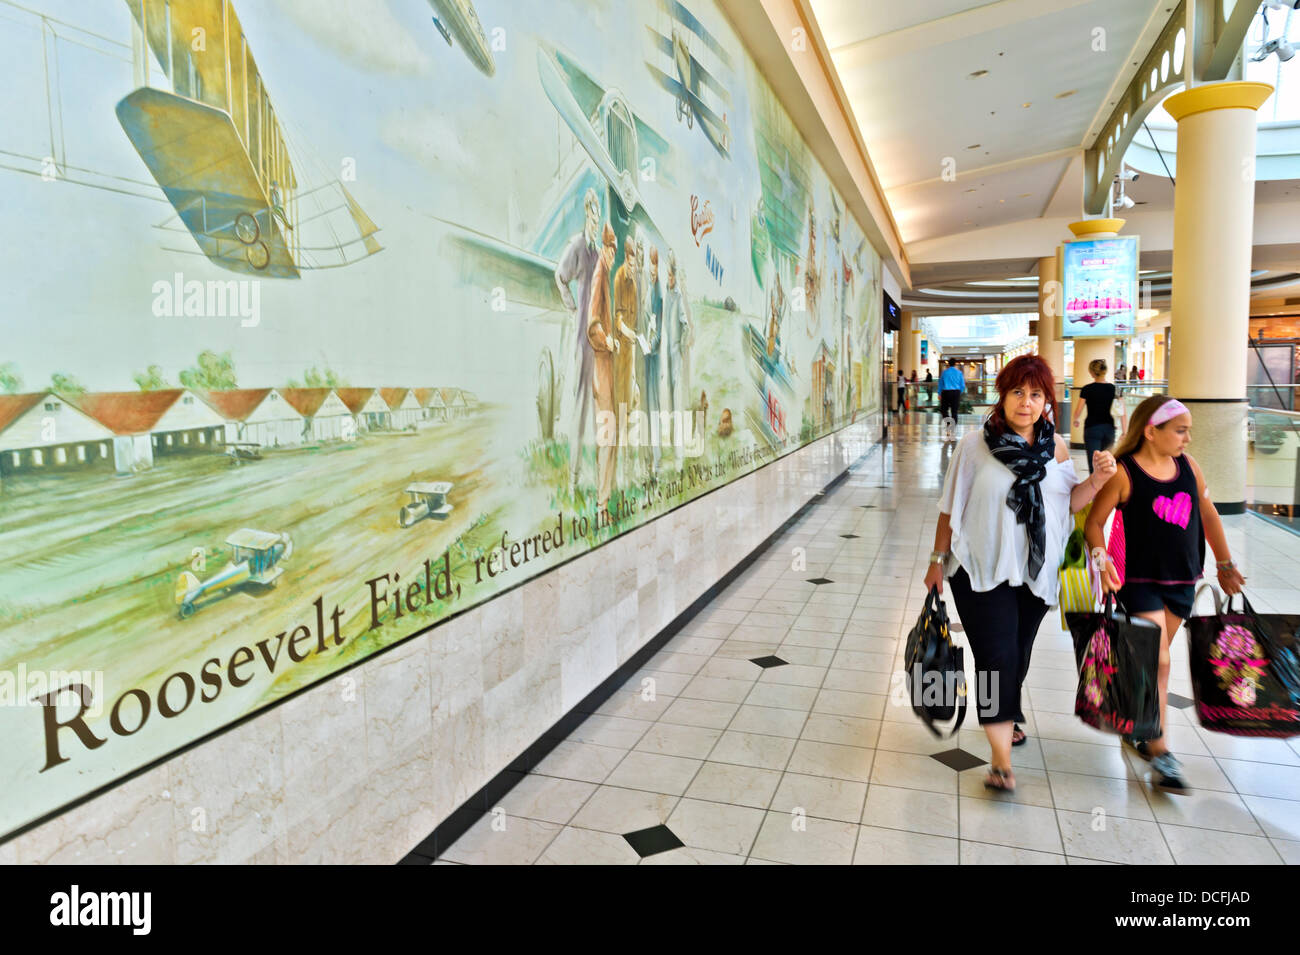 Roosevelt field shopping mall stock photos roosevelt field shopping mall stock images alamy for Roosevelt field garden city ny